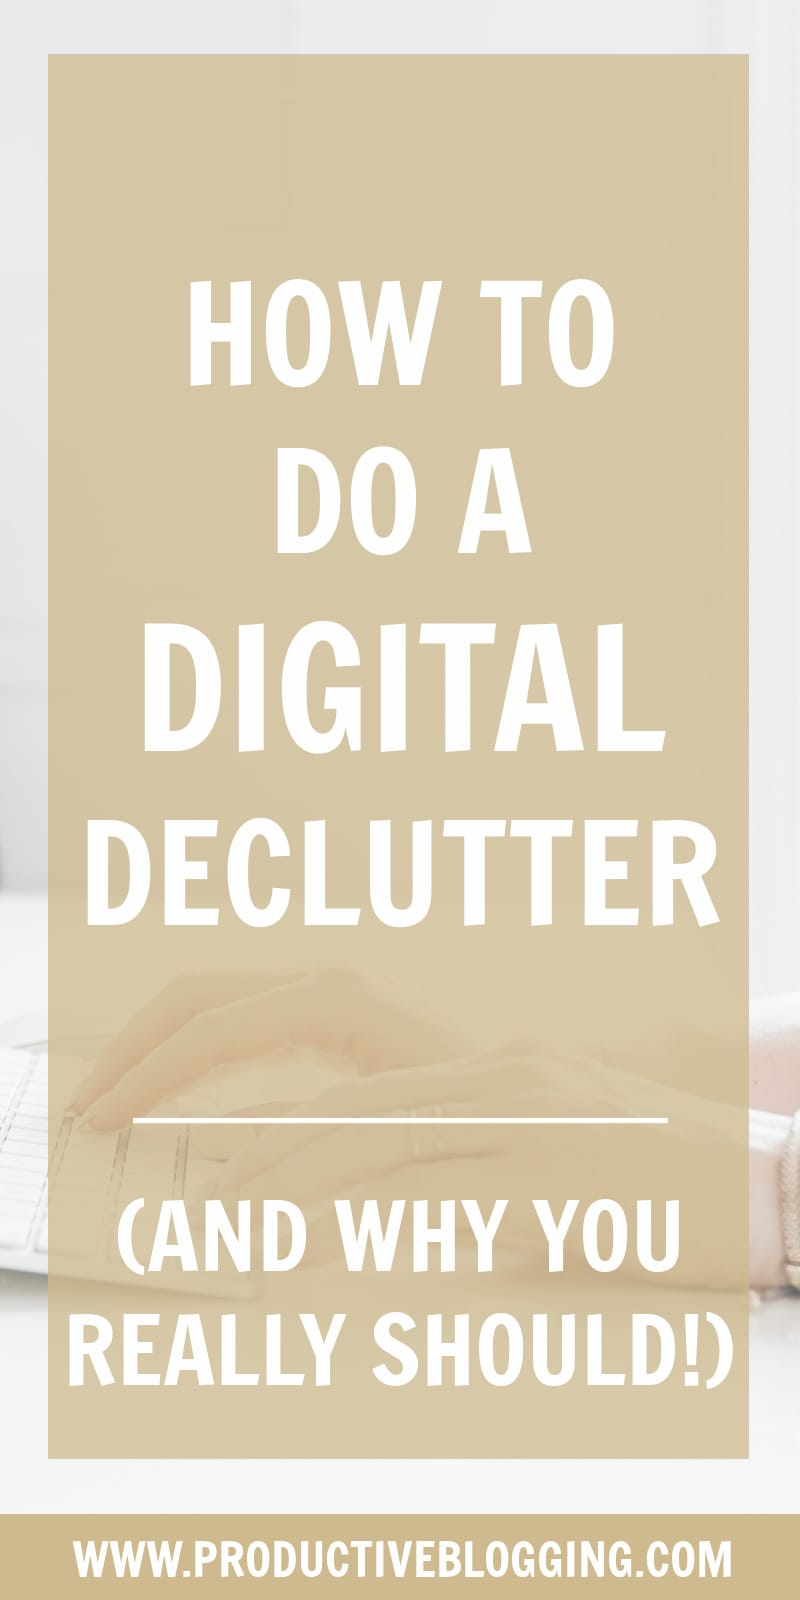 Tidy your digital devices, organize your files and folders, detox your inbox, declutter your social media and develop better digital habits to reduce stress, improve productivity and boost your creativity! Here's how to do a digital declutter… #digitaldeclutter #digitaldetox #declutter #todolist #planning #timemanagement #efficiency #goals #blogginggoals #bloggingtips #bloggingbiz #solopreneur #organised #organized #productivity #productivitytips #productiveblogging #blogsmarternotharder #BSNH